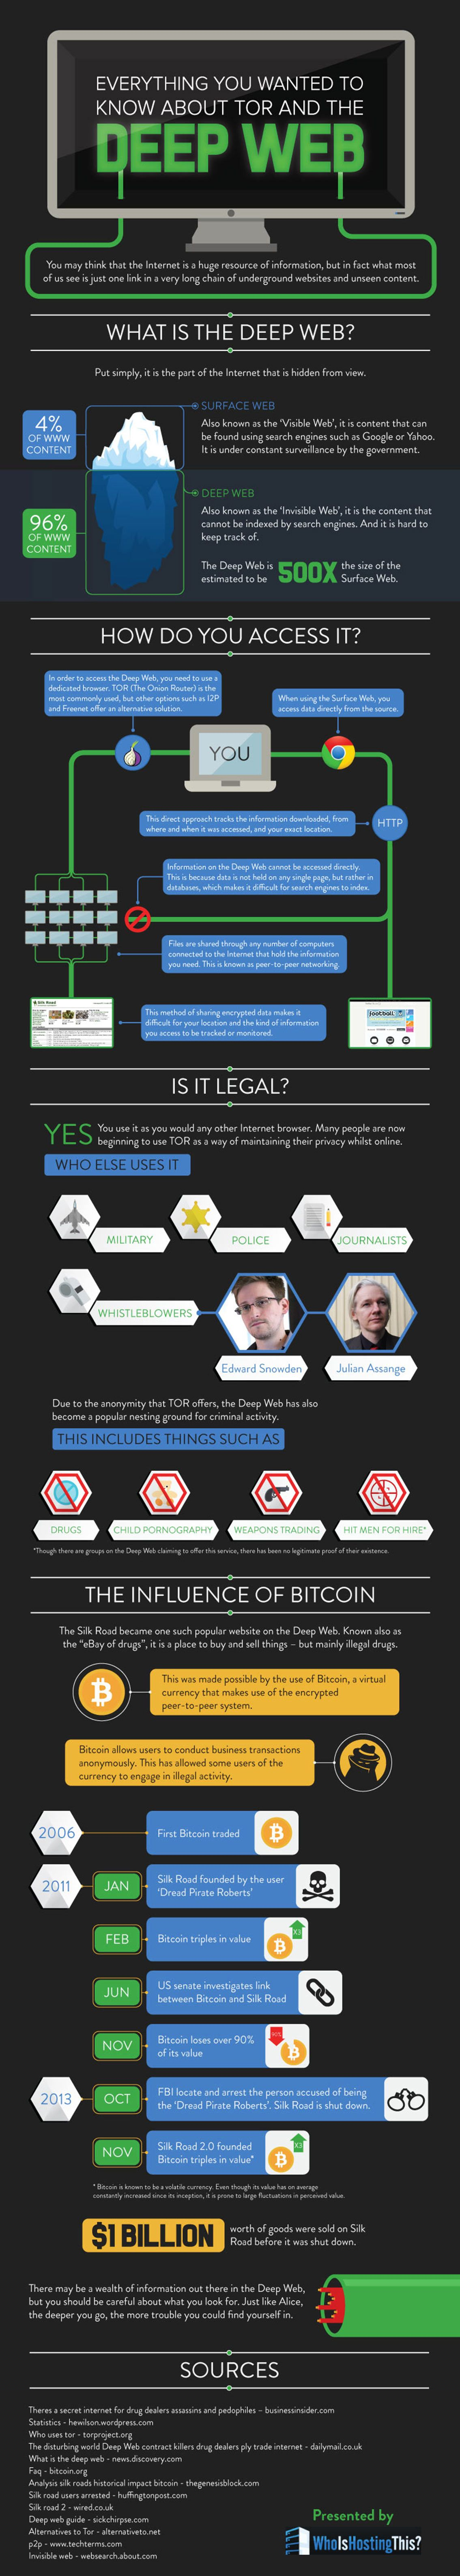 How to access the deep web safely infographic ccuart Images